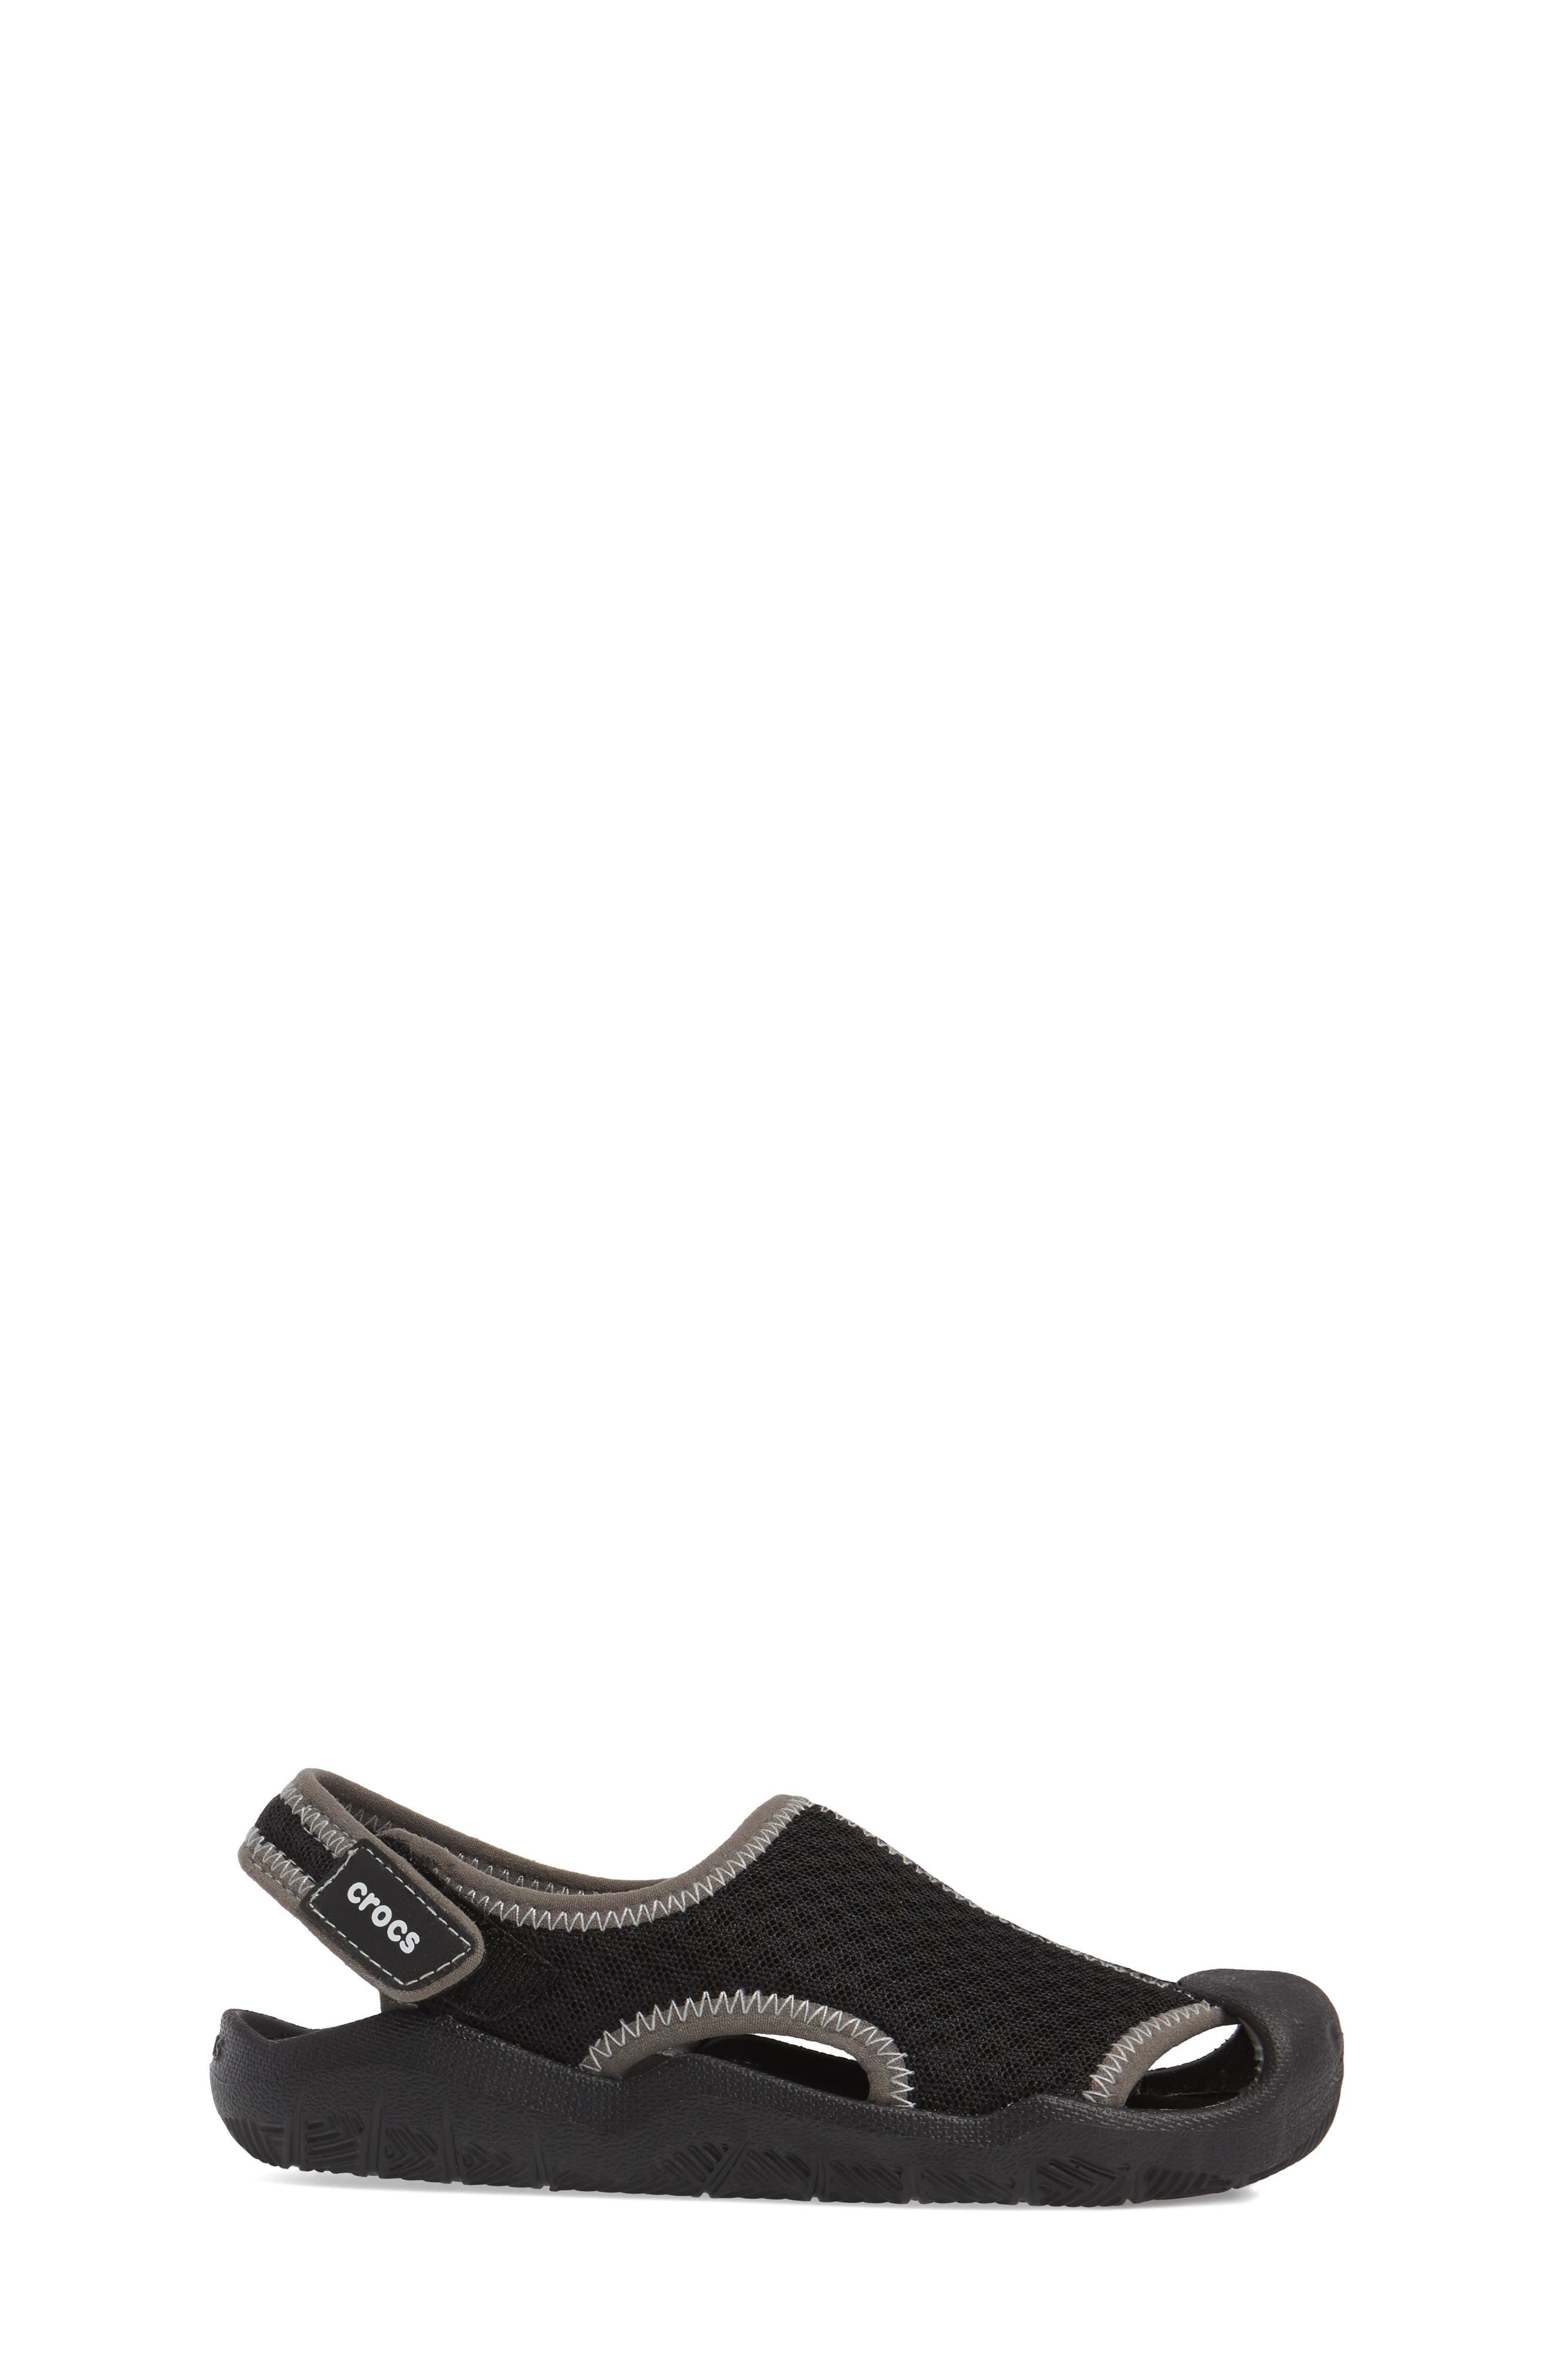 Swiftwater Sandal,                             Alternate thumbnail 18, color,